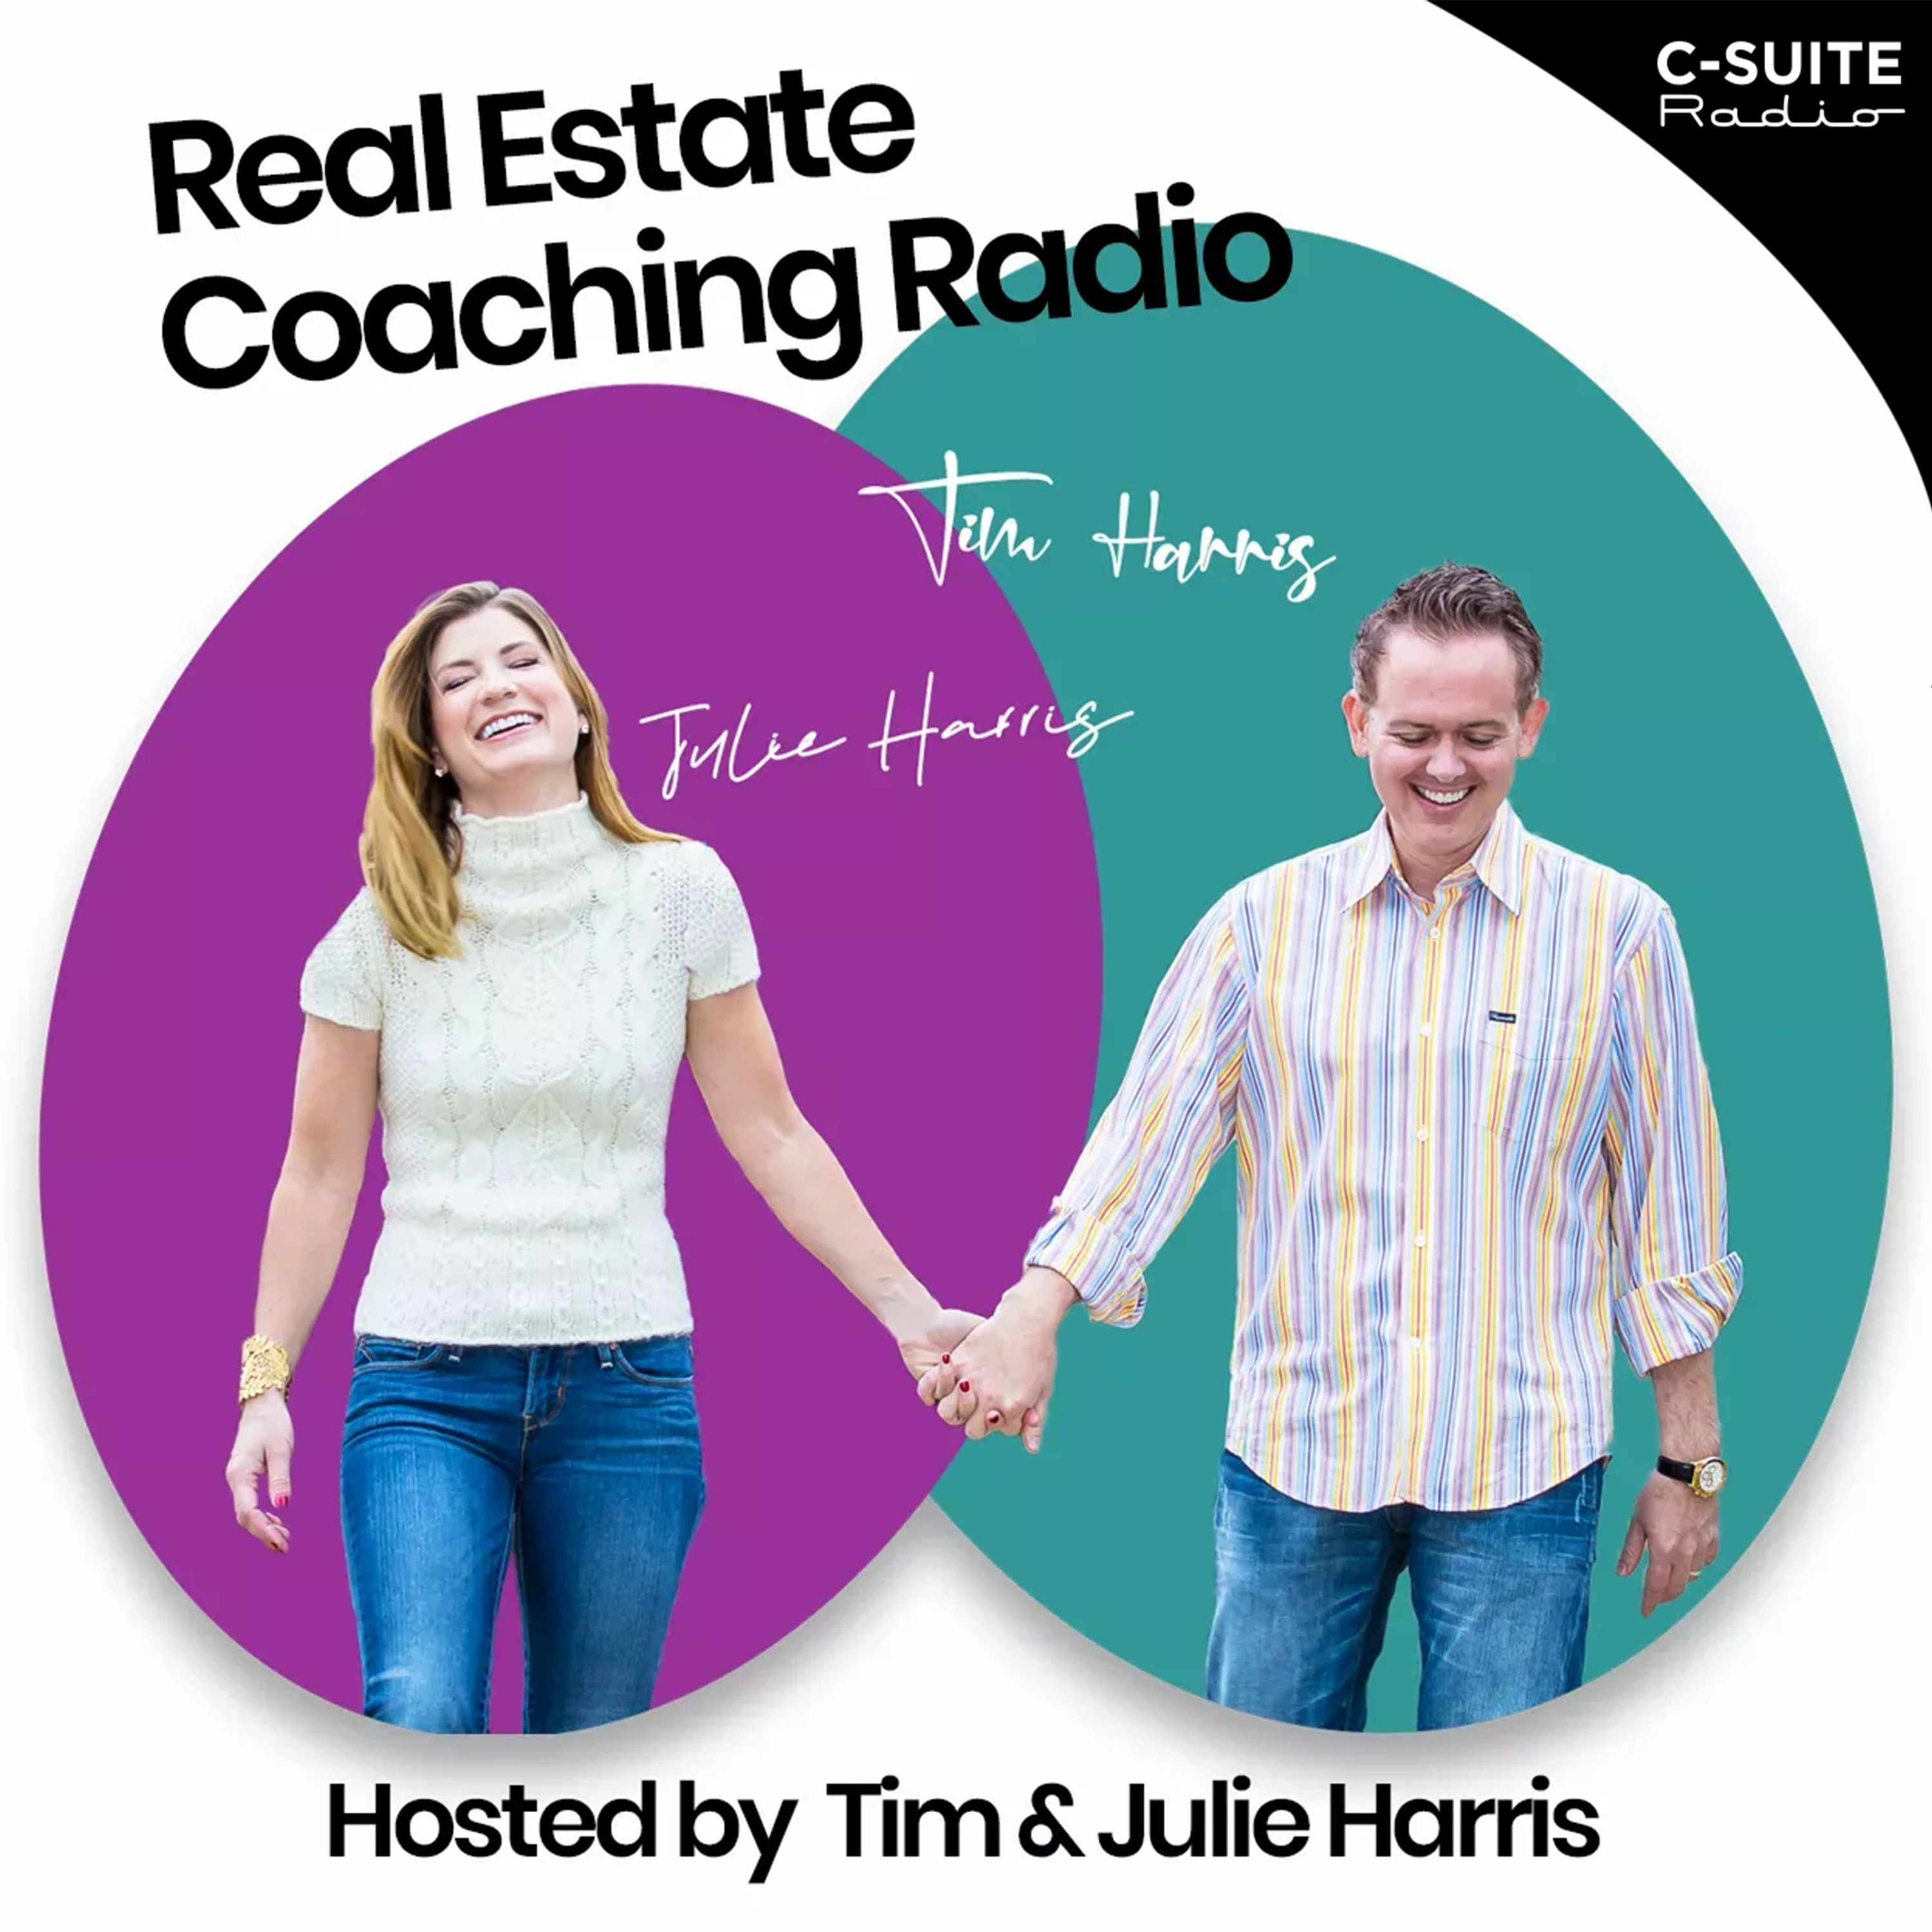 Real Estate Coaching Radio